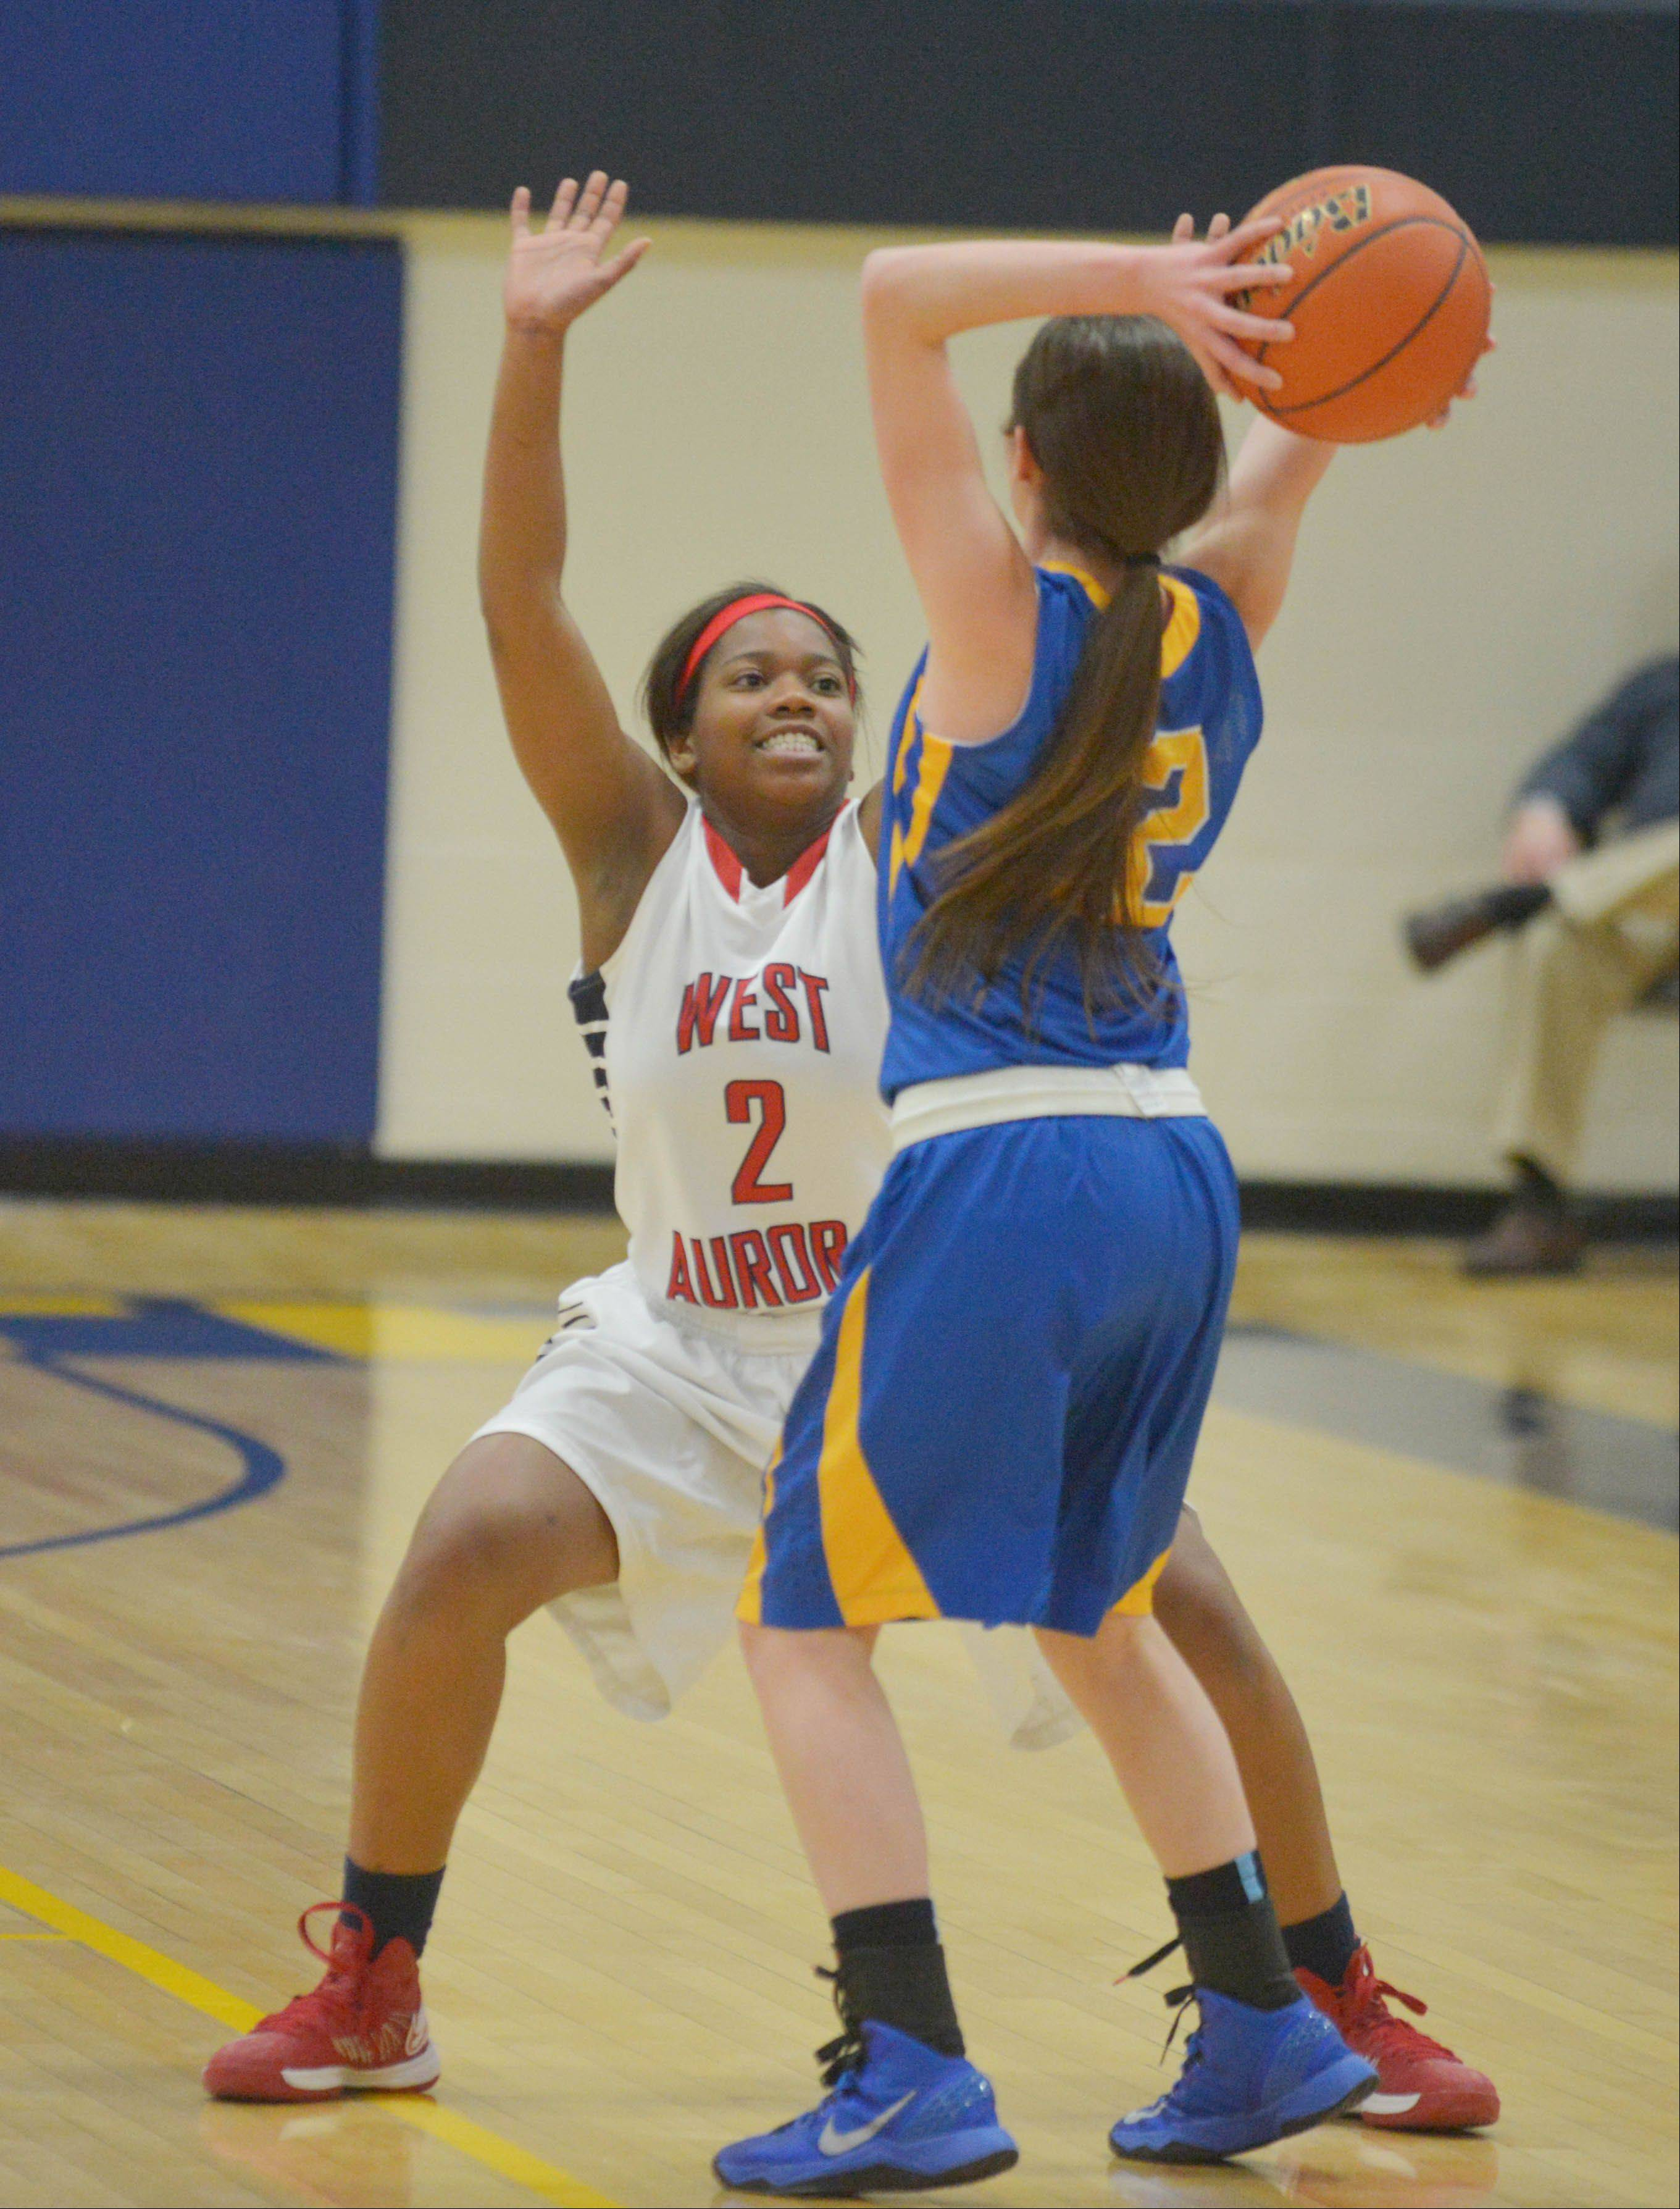 Ashley Williams of West Aurora attempts to block Nina Scaramella of Lyons during the West Aurora at Wheaton North girls basketball tournament game Thursday.